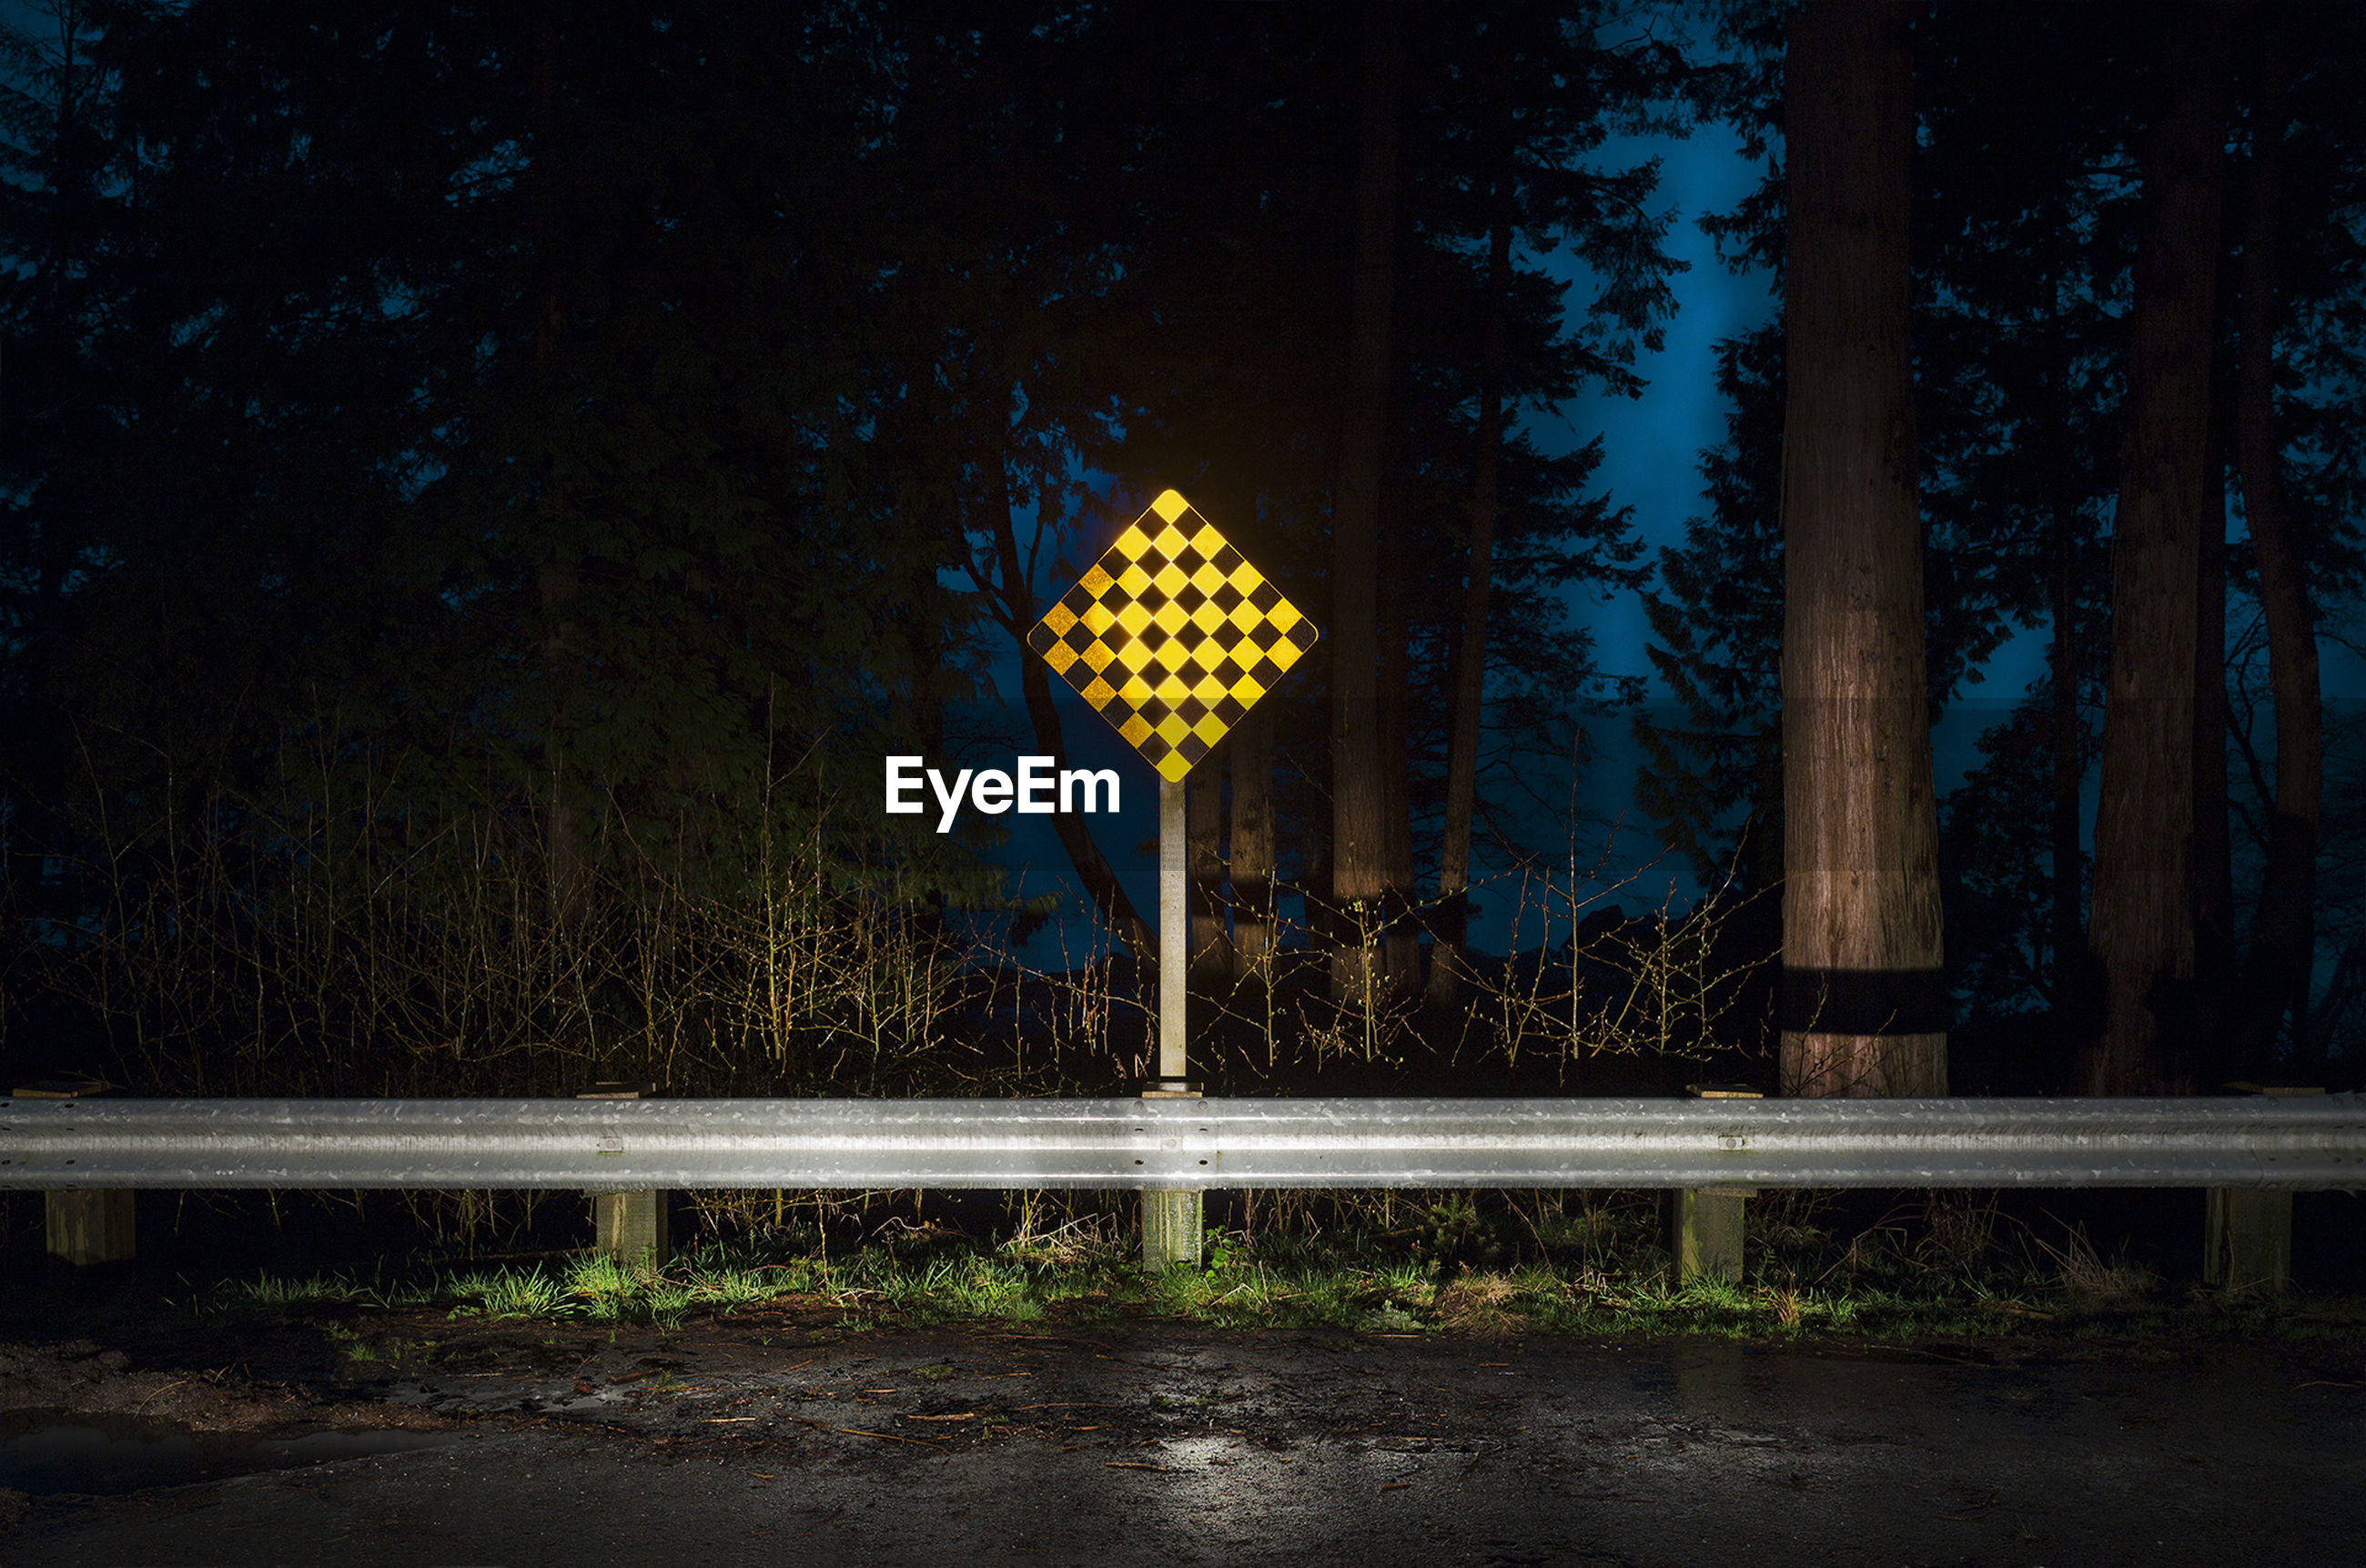 ILLUMINATED INFORMATION SIGN AGAINST TREES AT NIGHT